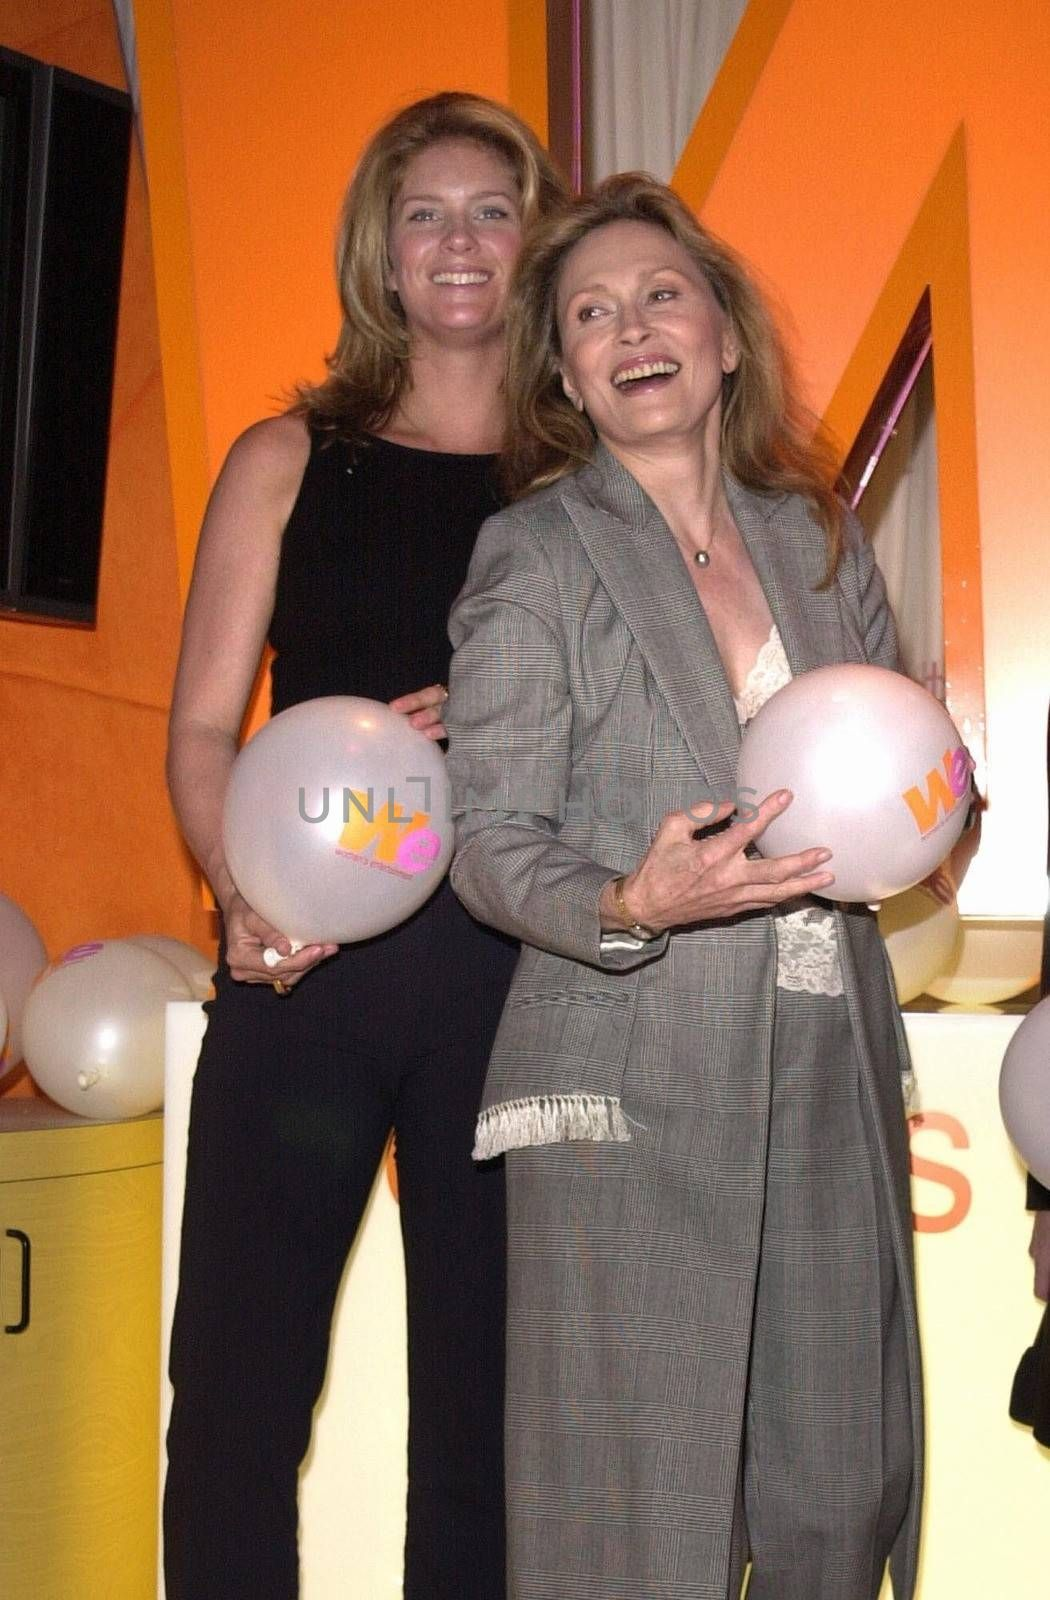 Rachel Hunter and Faye Dunaway at the unveiling of the new name for Romance Classics Television in Los Angeles, 11-29-00